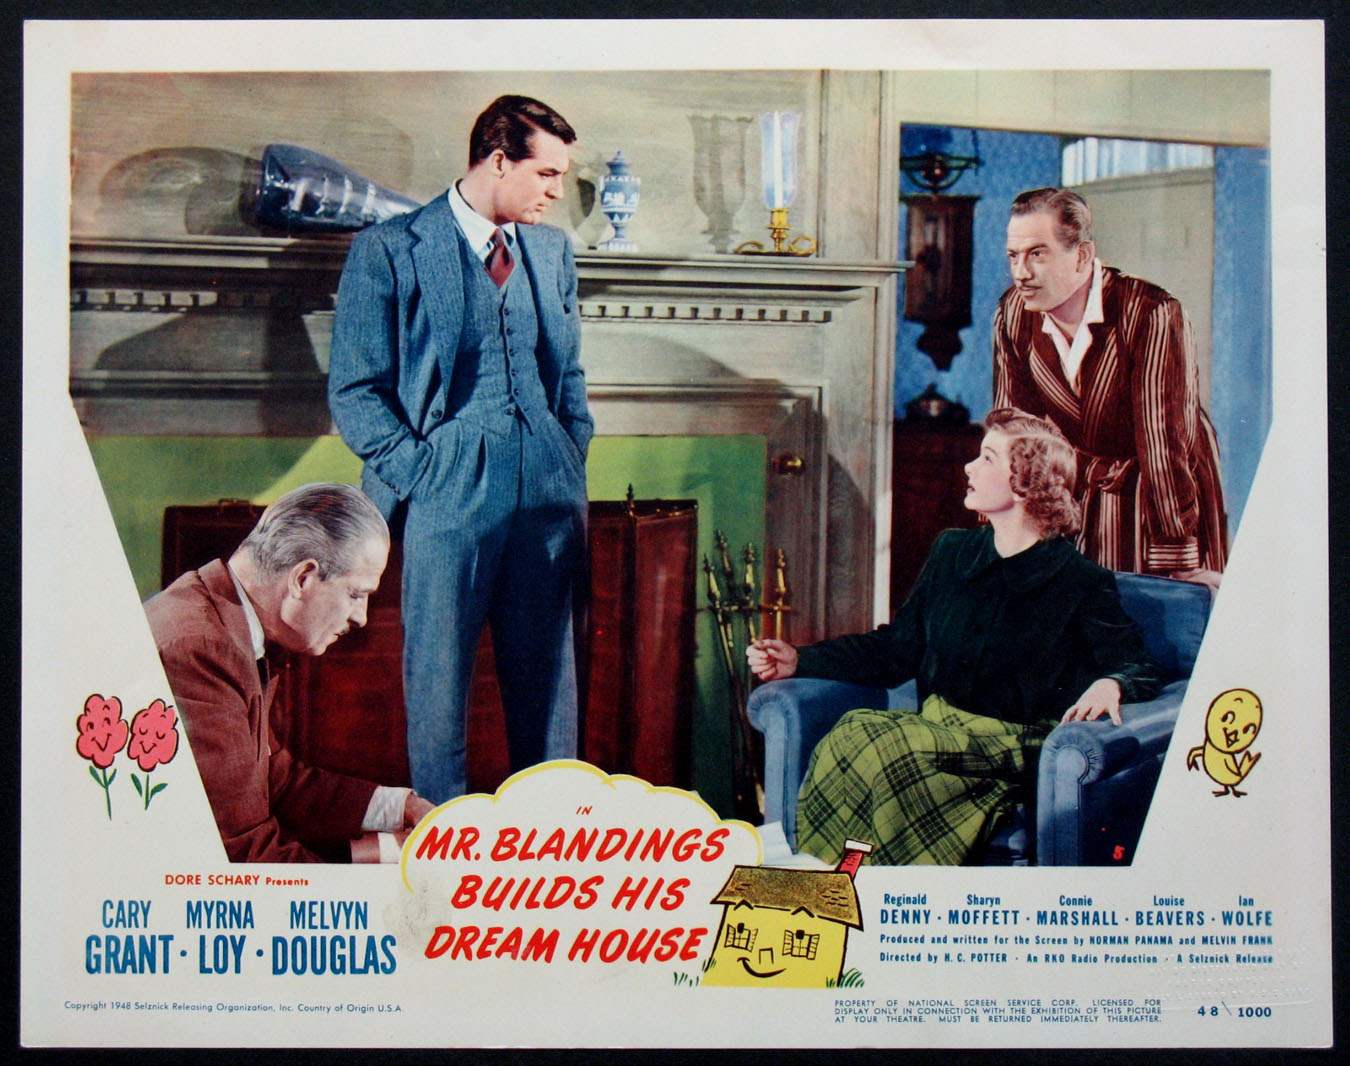 MR. BLANDINGS BUILDS HIS DREAM HOUSE Movie Poster (1948)